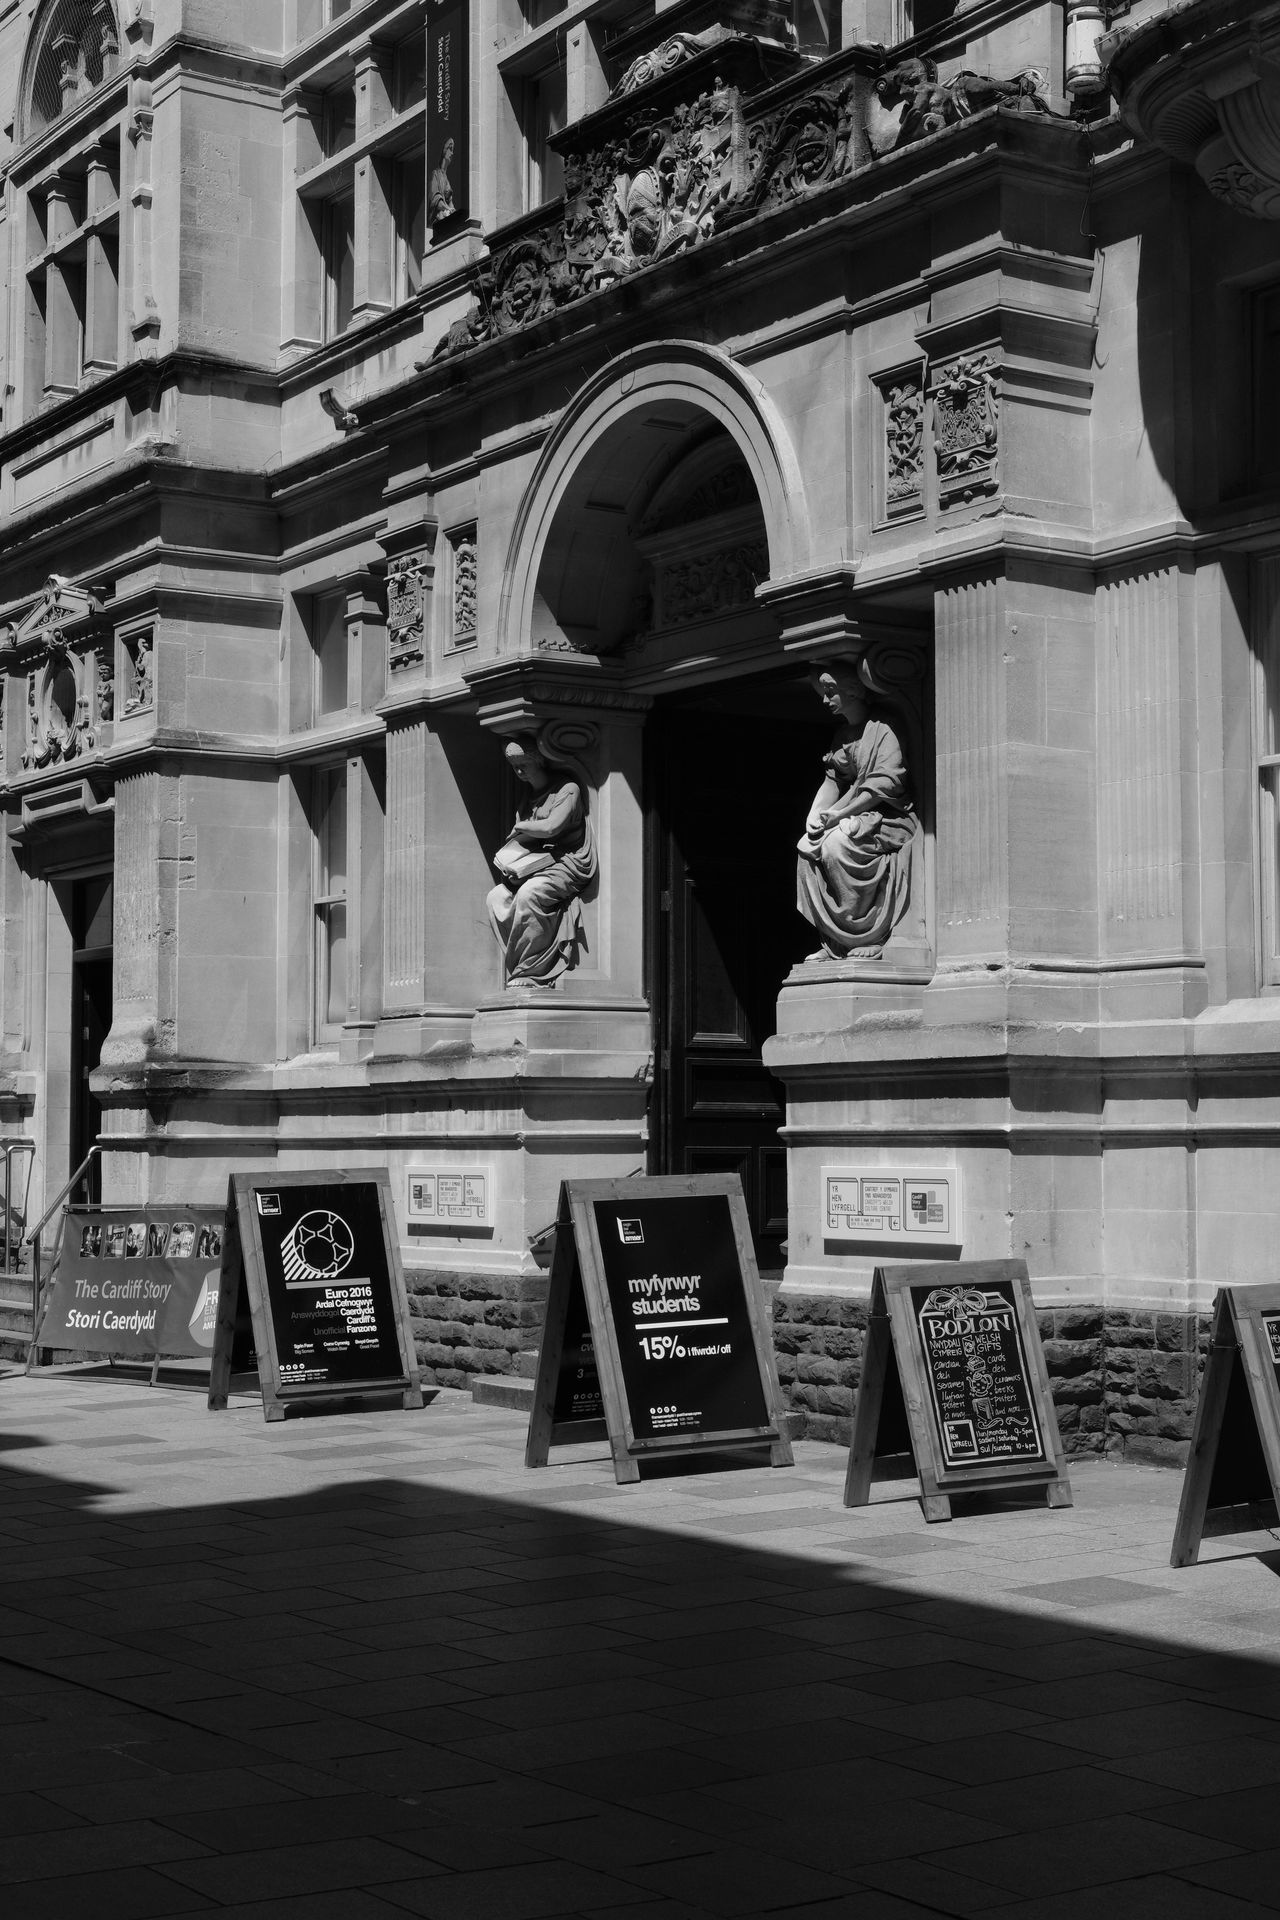 Architectural Column Architecture Black & White Building Built Structure Cardiff City City Life Day Doorway Façade Museum No People Outdoors Sculpture Shadow Signs The Cardiff Story The Old Library